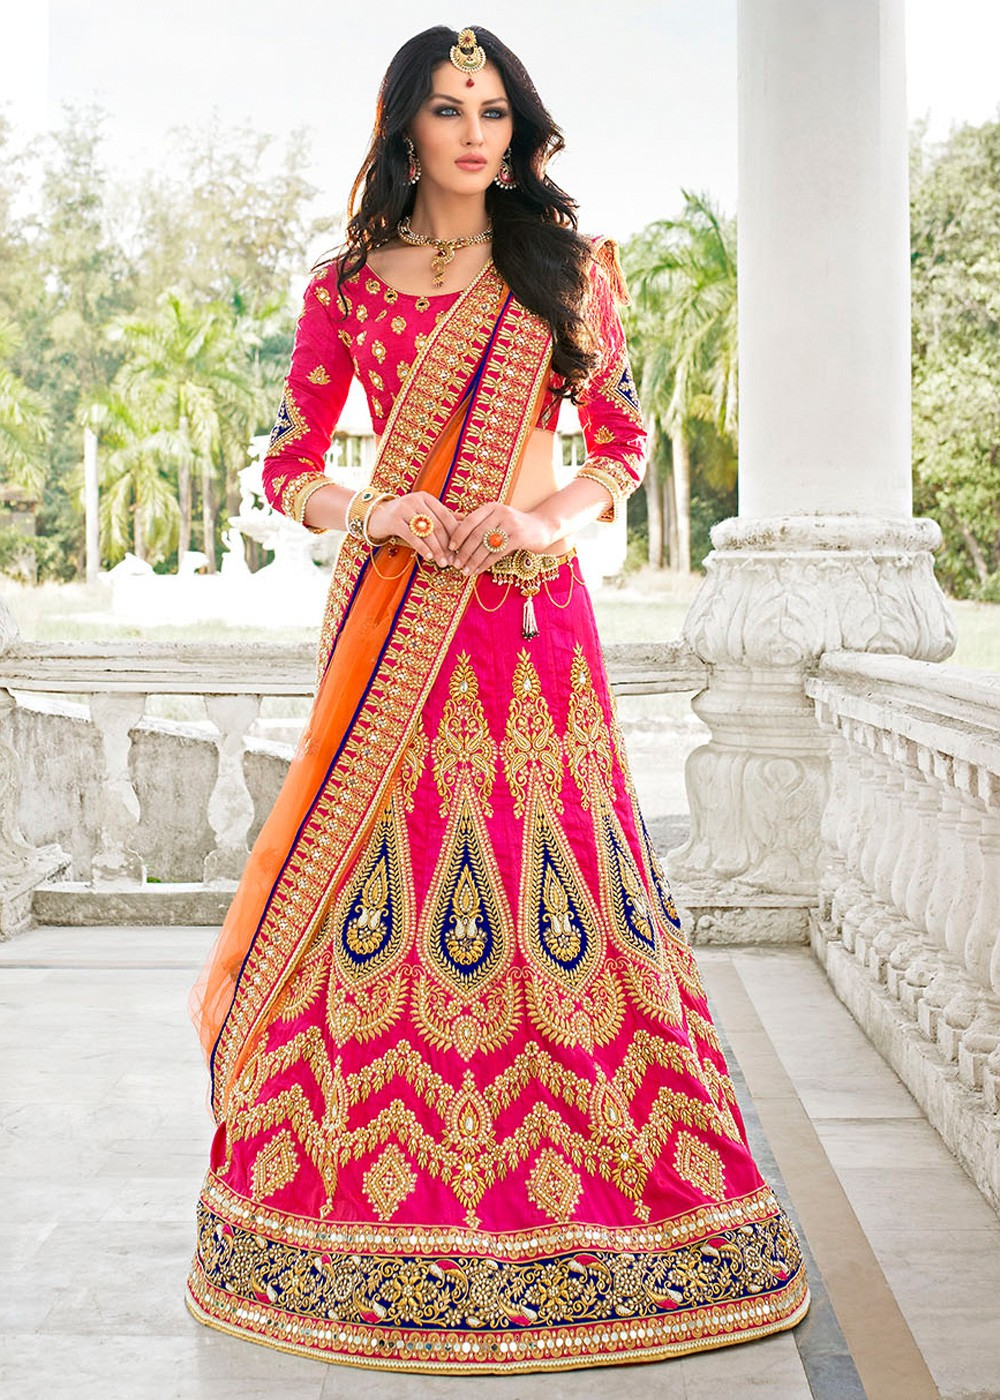 9879cbe686fa30 trend of Saree introduced in India. This is an aesthetic blend of the  traditional Saree and a Lehenga choli. Lehenga style saree is normally 4.5  meters to ...